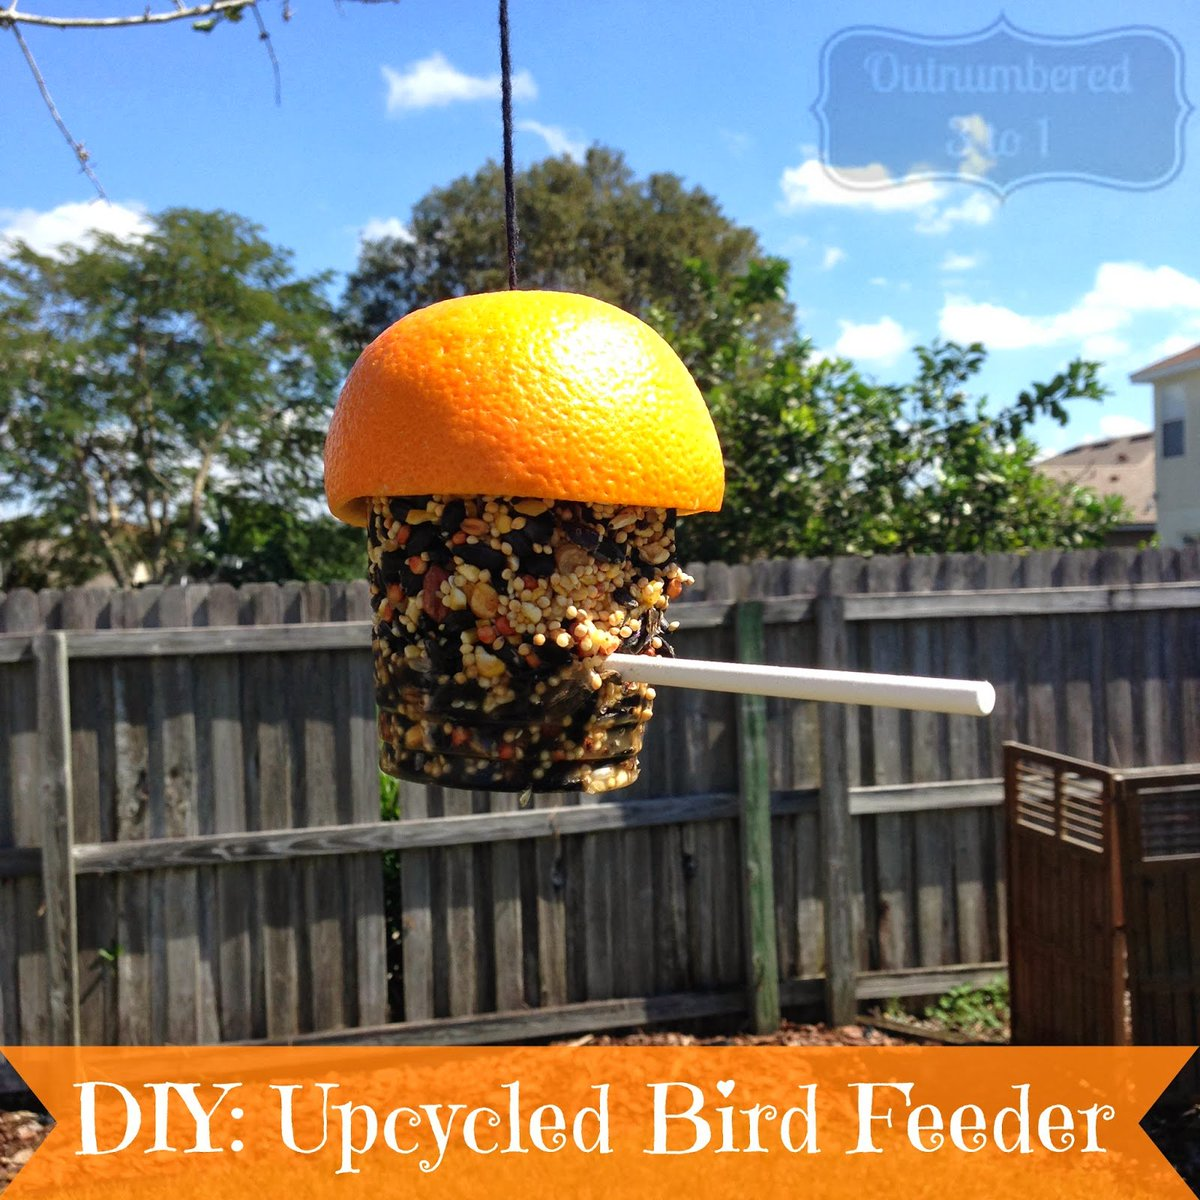 Learn how to make this cute bird feeder by upcycling things you'd toss out! https://t.co/DgMs7yXOwg https://t.co/DBCWXqhfGk